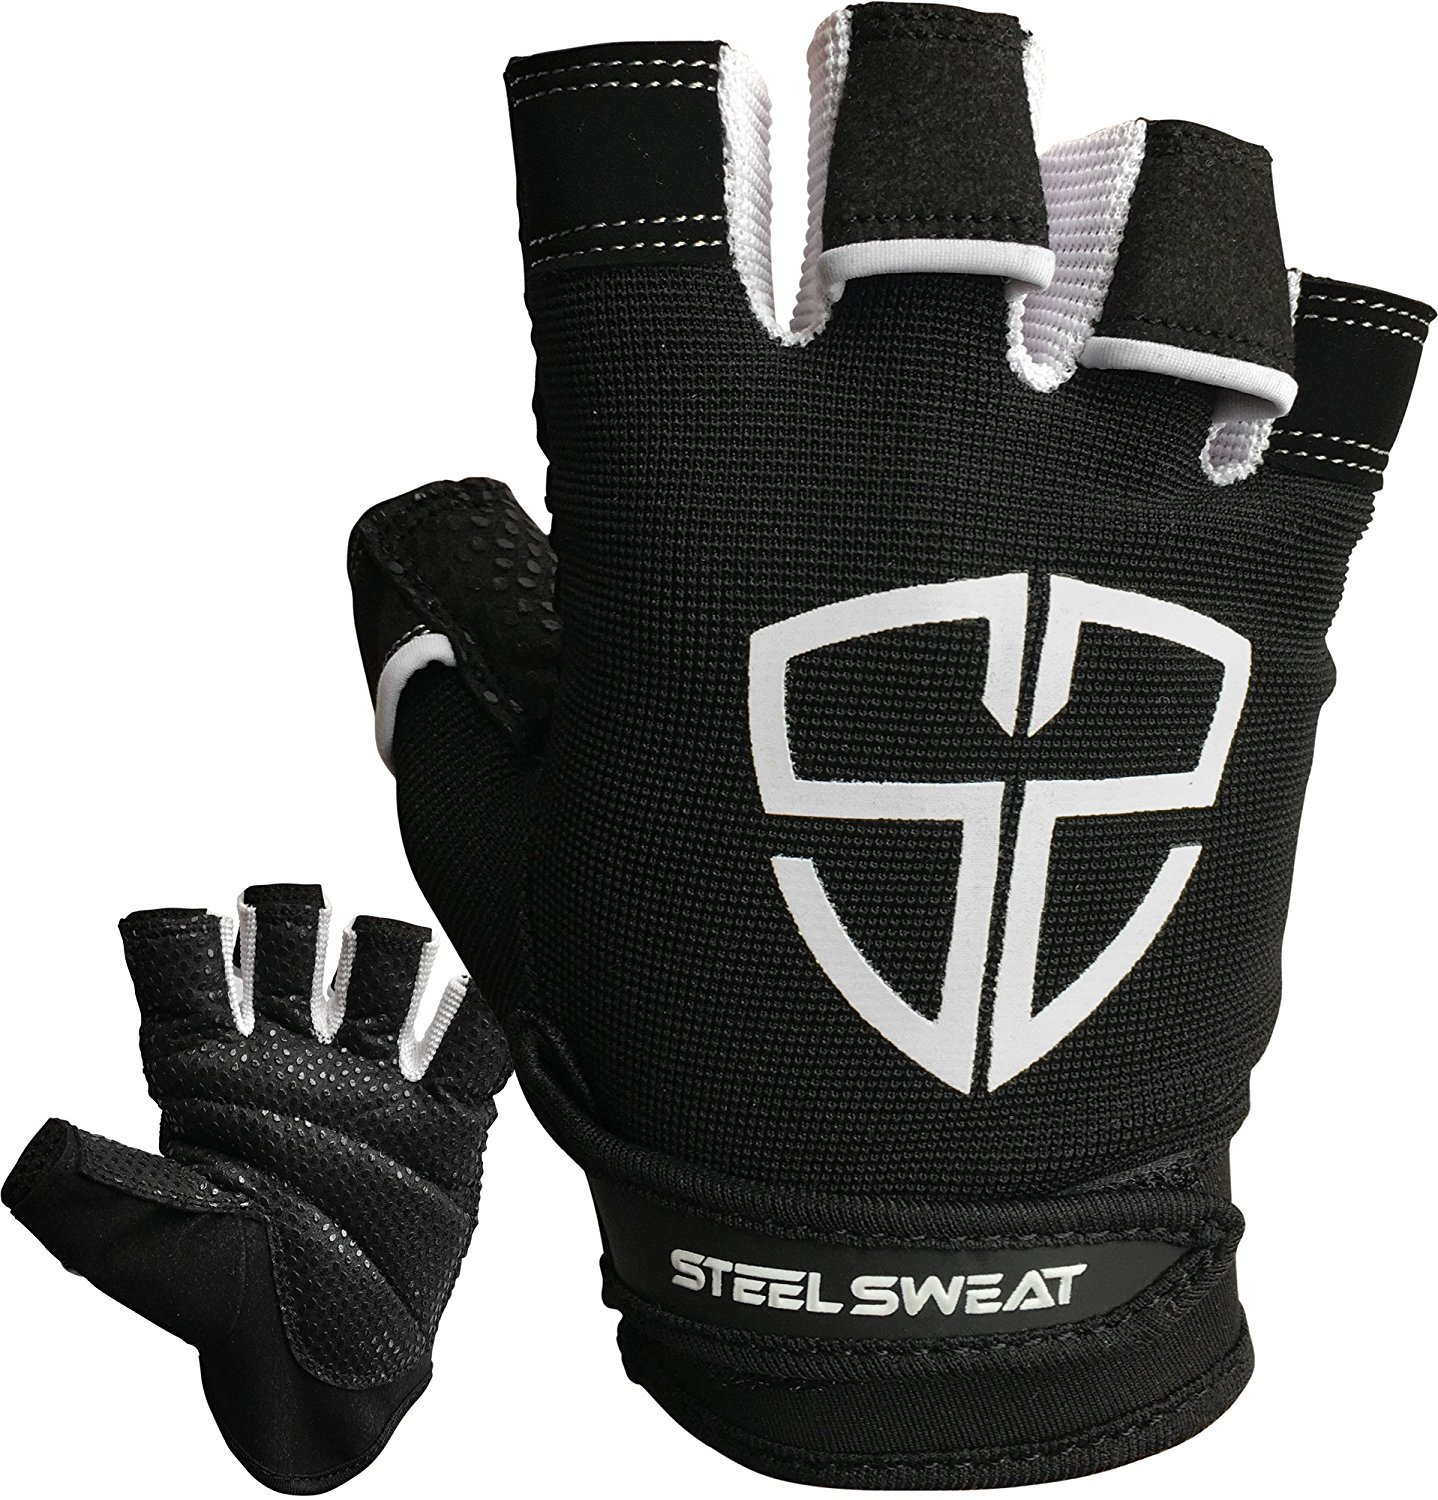 Steel Sweat Workout Gloves - Best for Gym, Weightlifting, Fitness, Training  and Crossfit